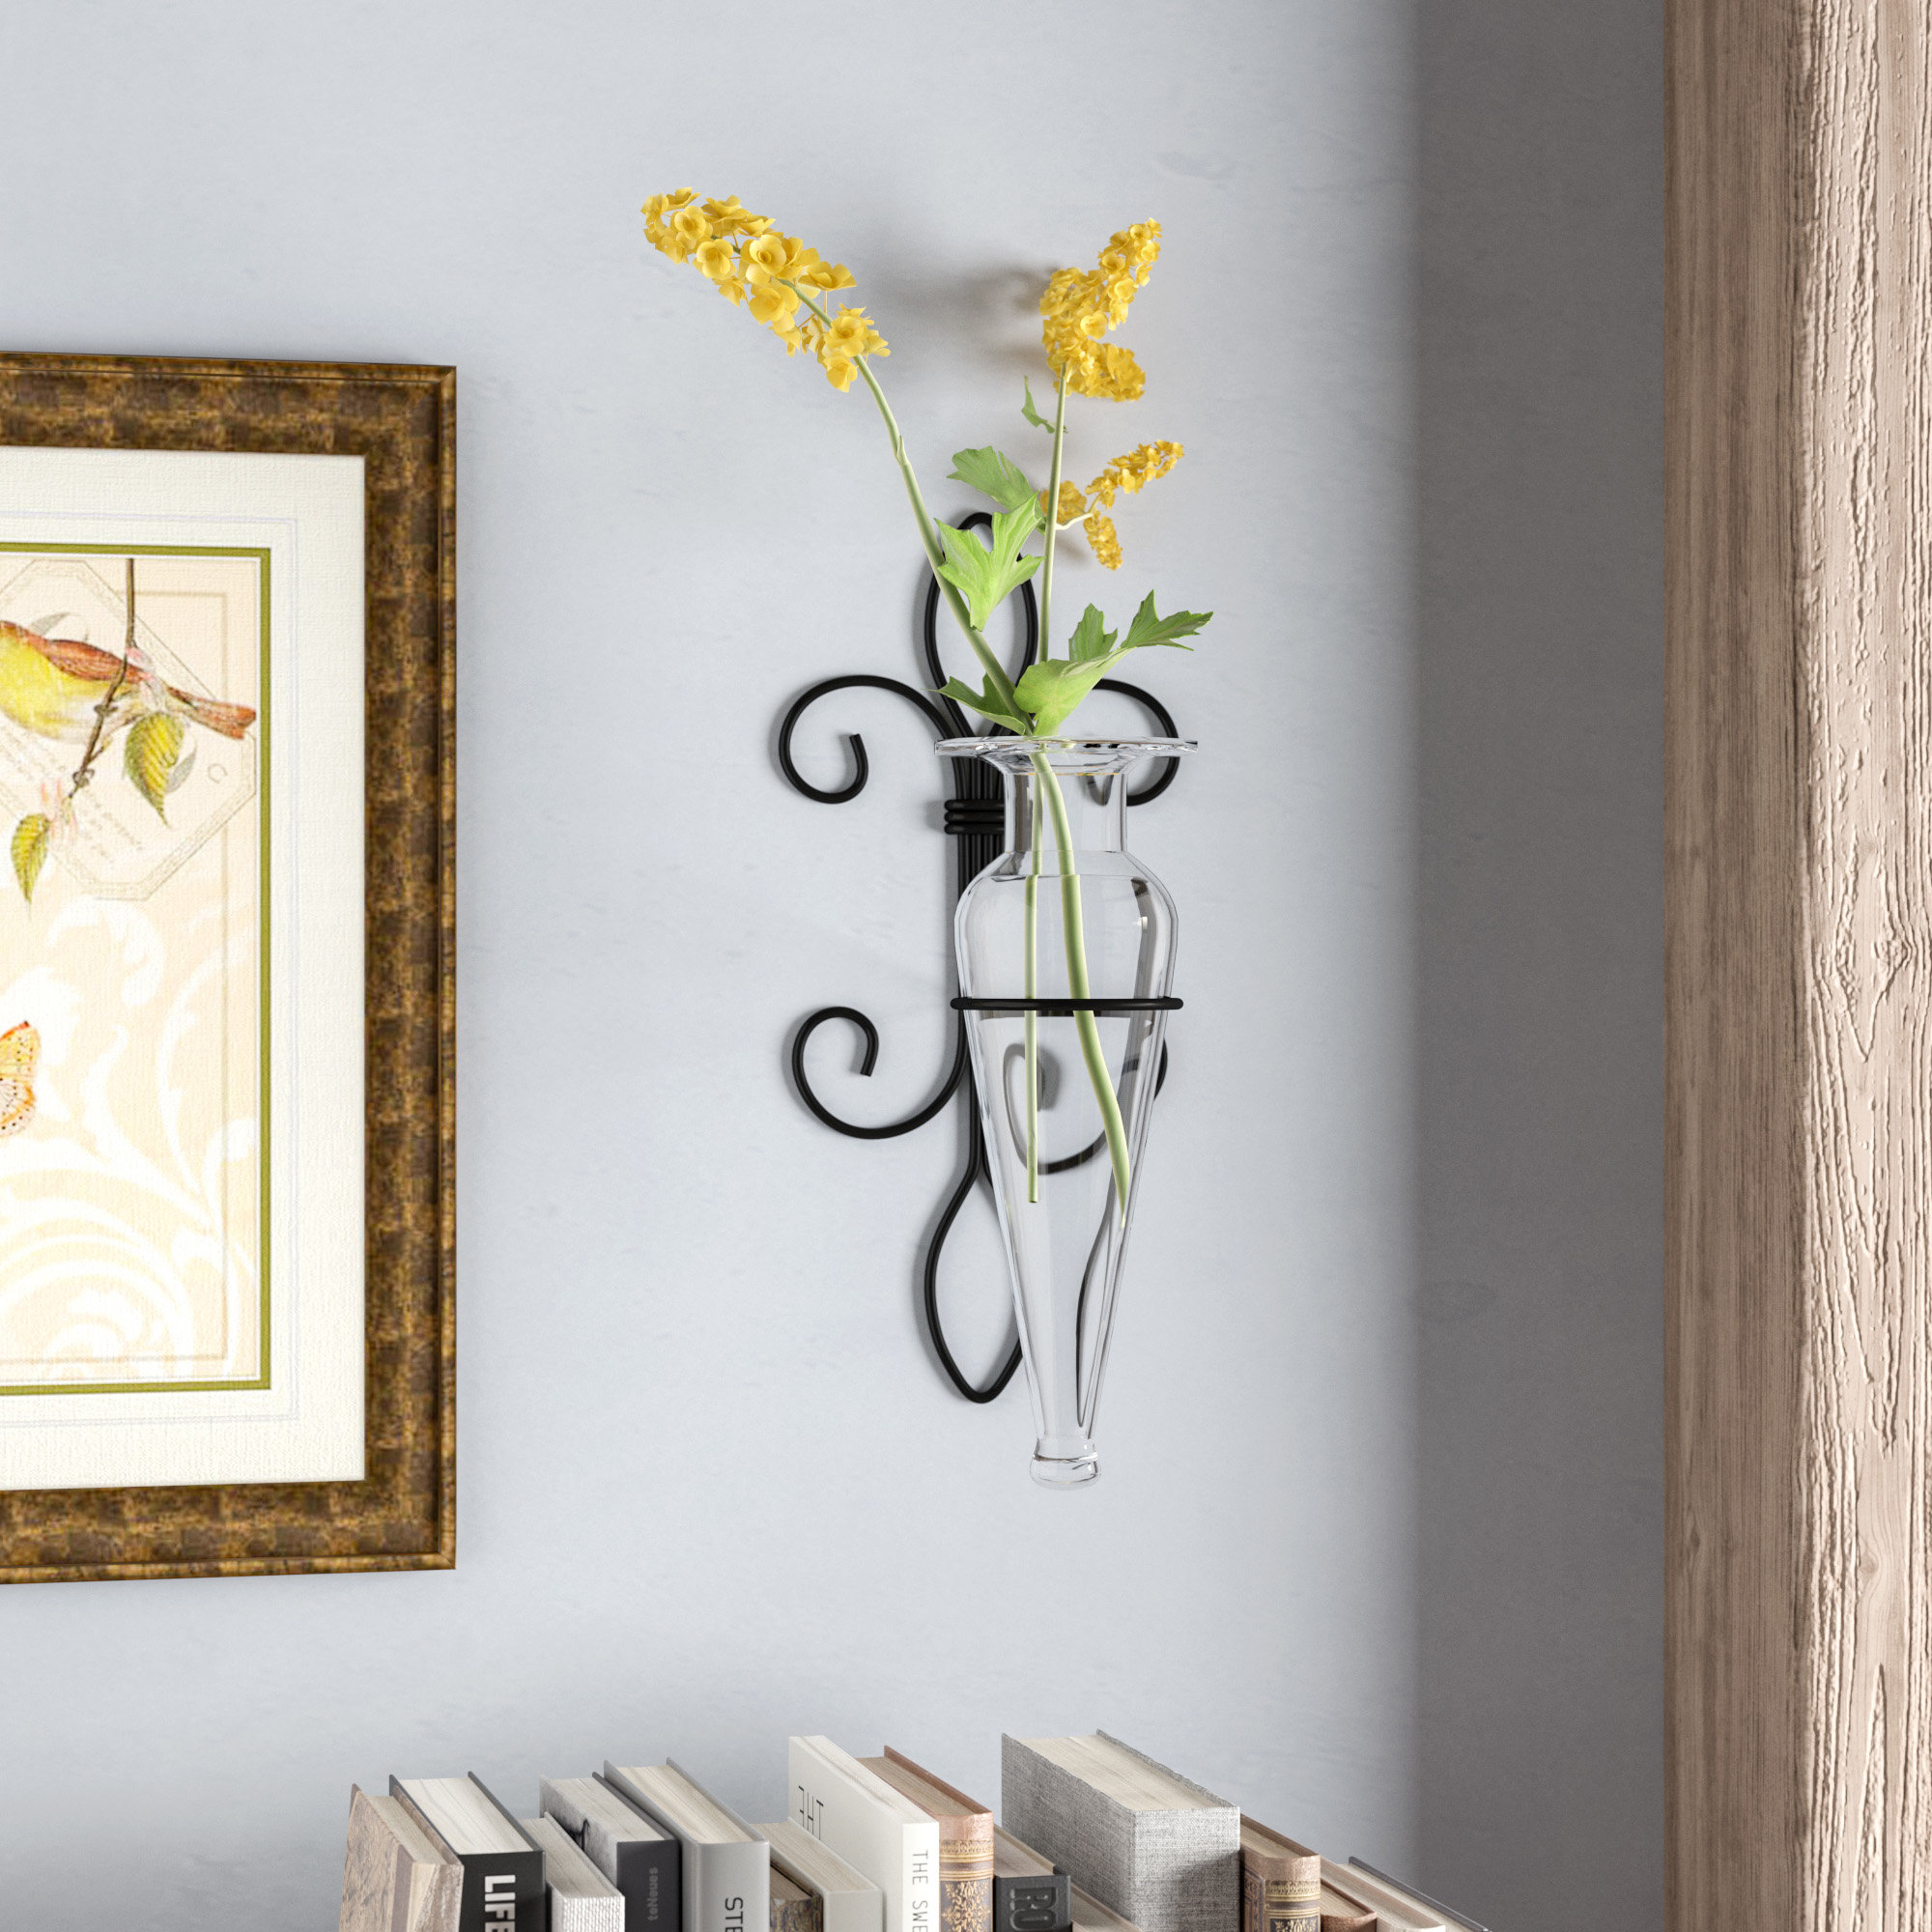 Vase And Bowl Wall Decor | Wayfair In Vase And Bowl Wall Decor By Alcott Hill (View 4 of 30)